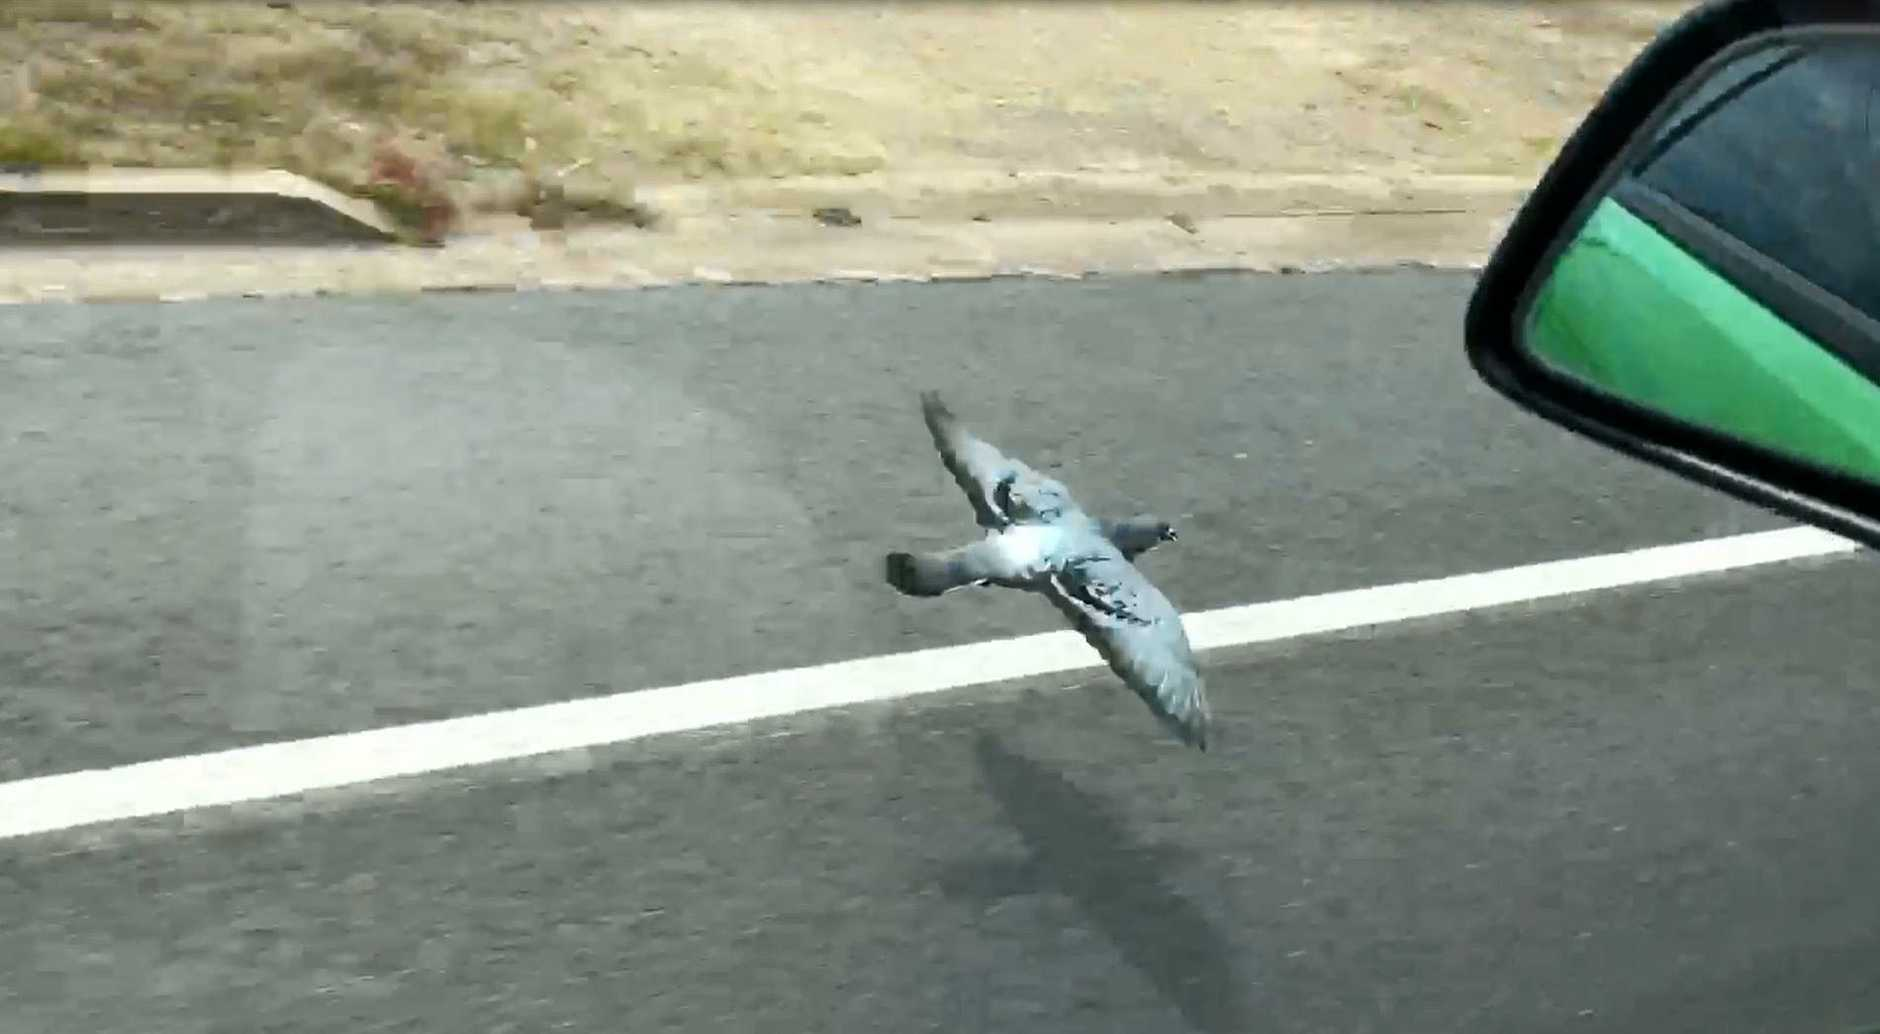 Sirena Butcher and her partner caught incredible footage of the racing pigeon along Saltwater Creek Rd on Sunday morning.